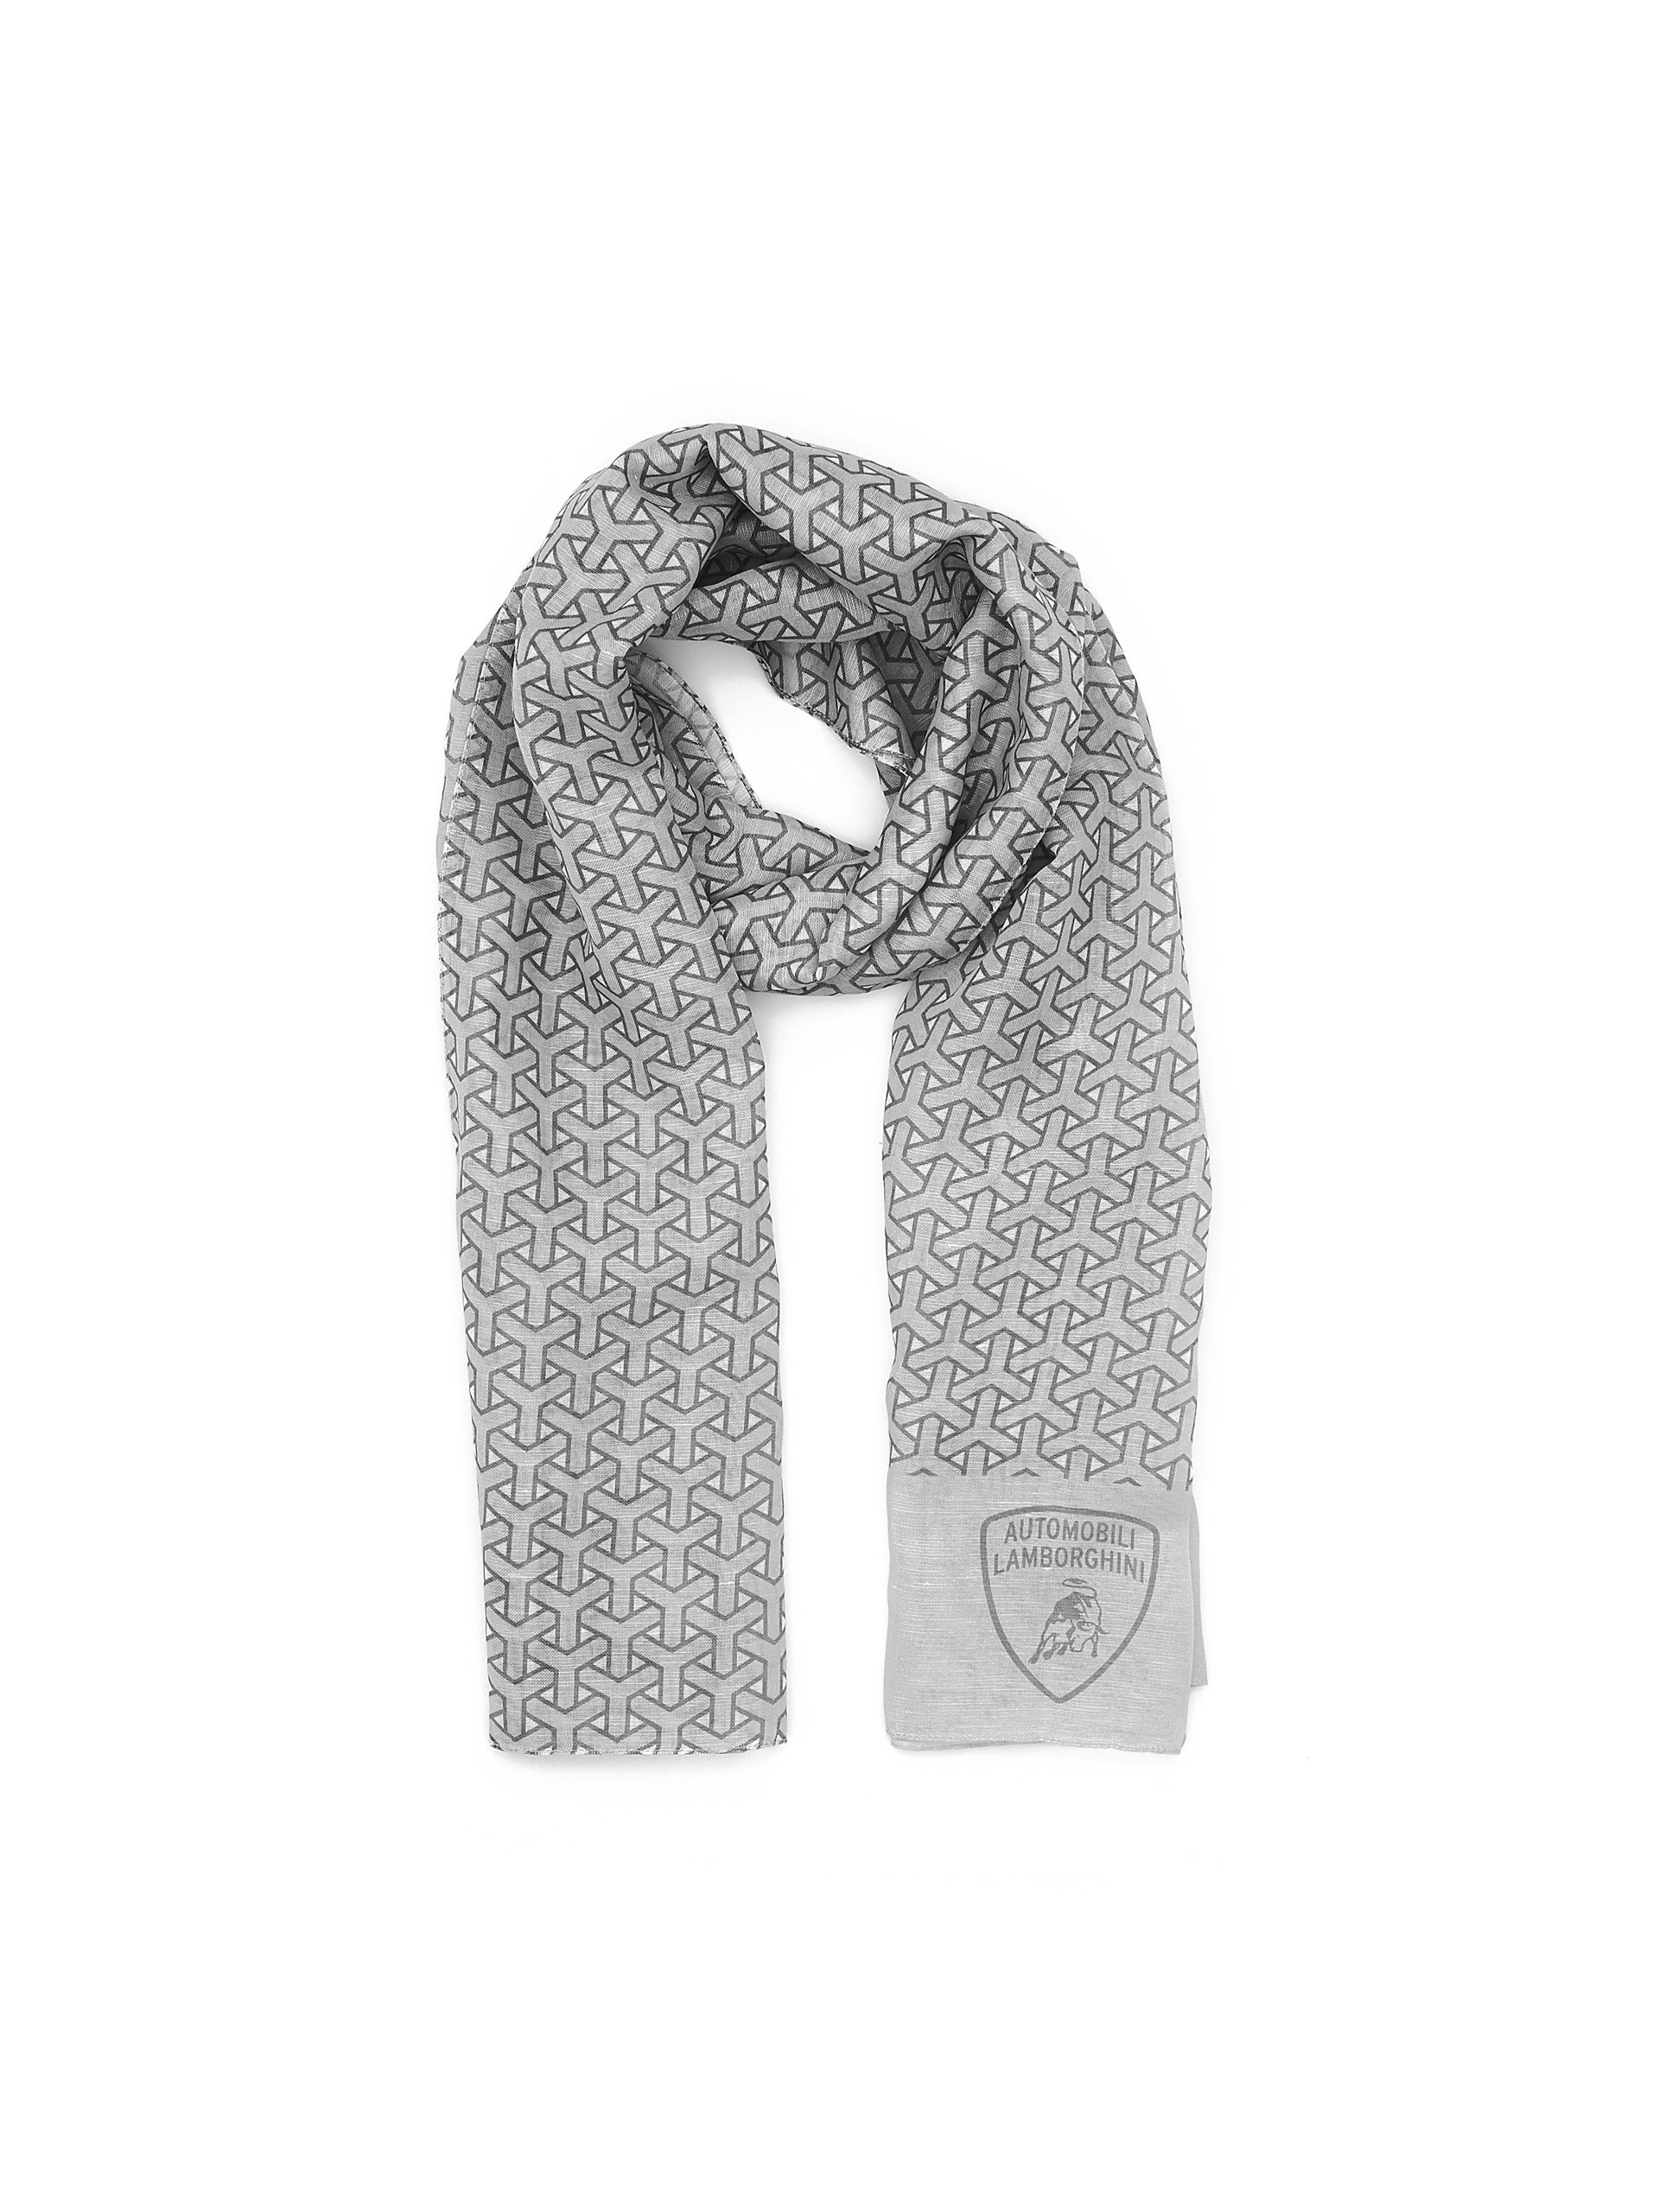 Automobili Lamborghini Accessories Y Scarf One Size Grey